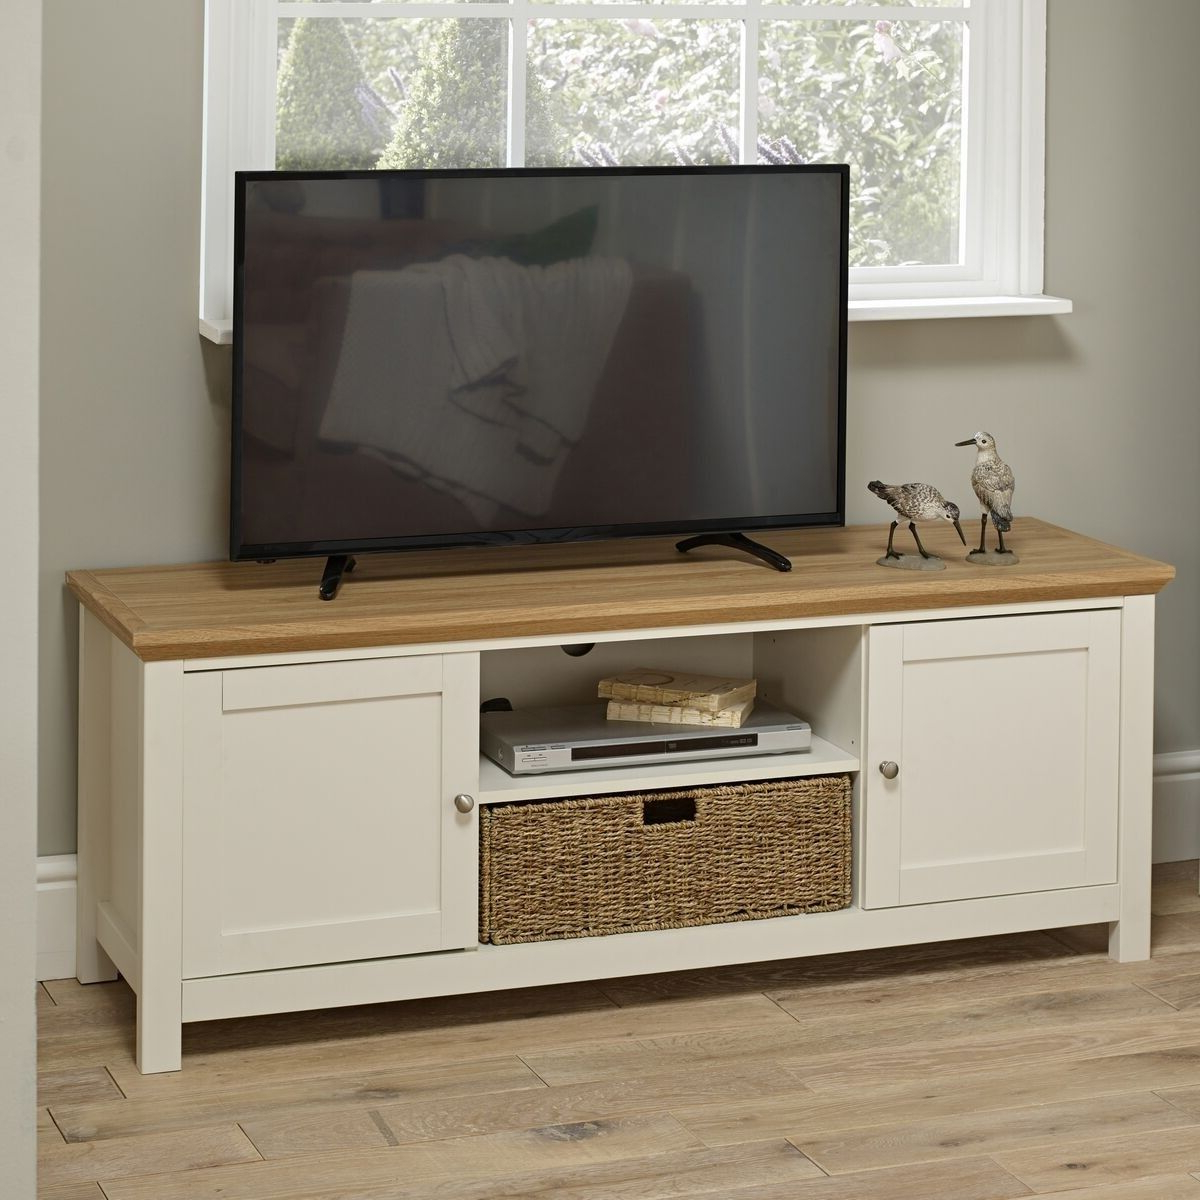 Wooden Tv Regarding Cotswold Widescreen Tv Unit Stands (View 1 of 10)